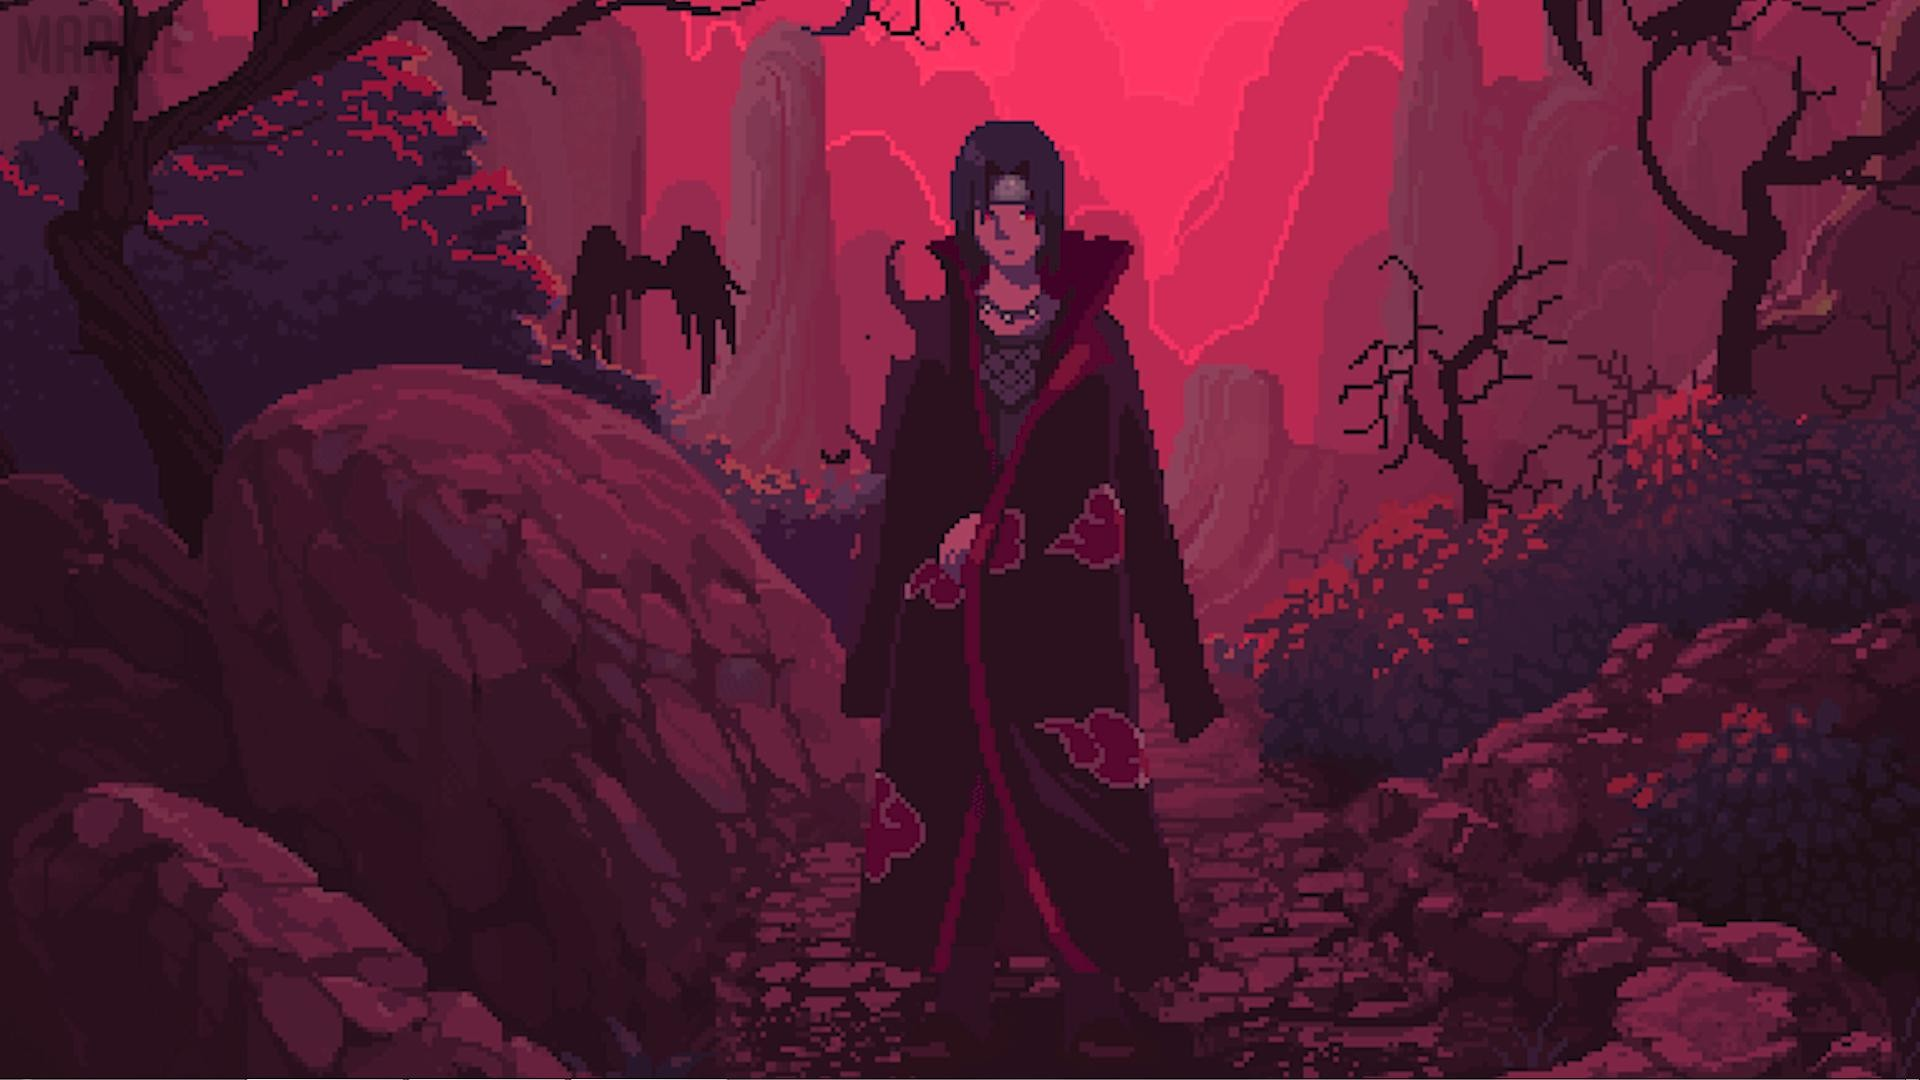 Itachi Uchiha Susanoo Wallpaper Hd: Itachi HD Wallpaper (69+ Images